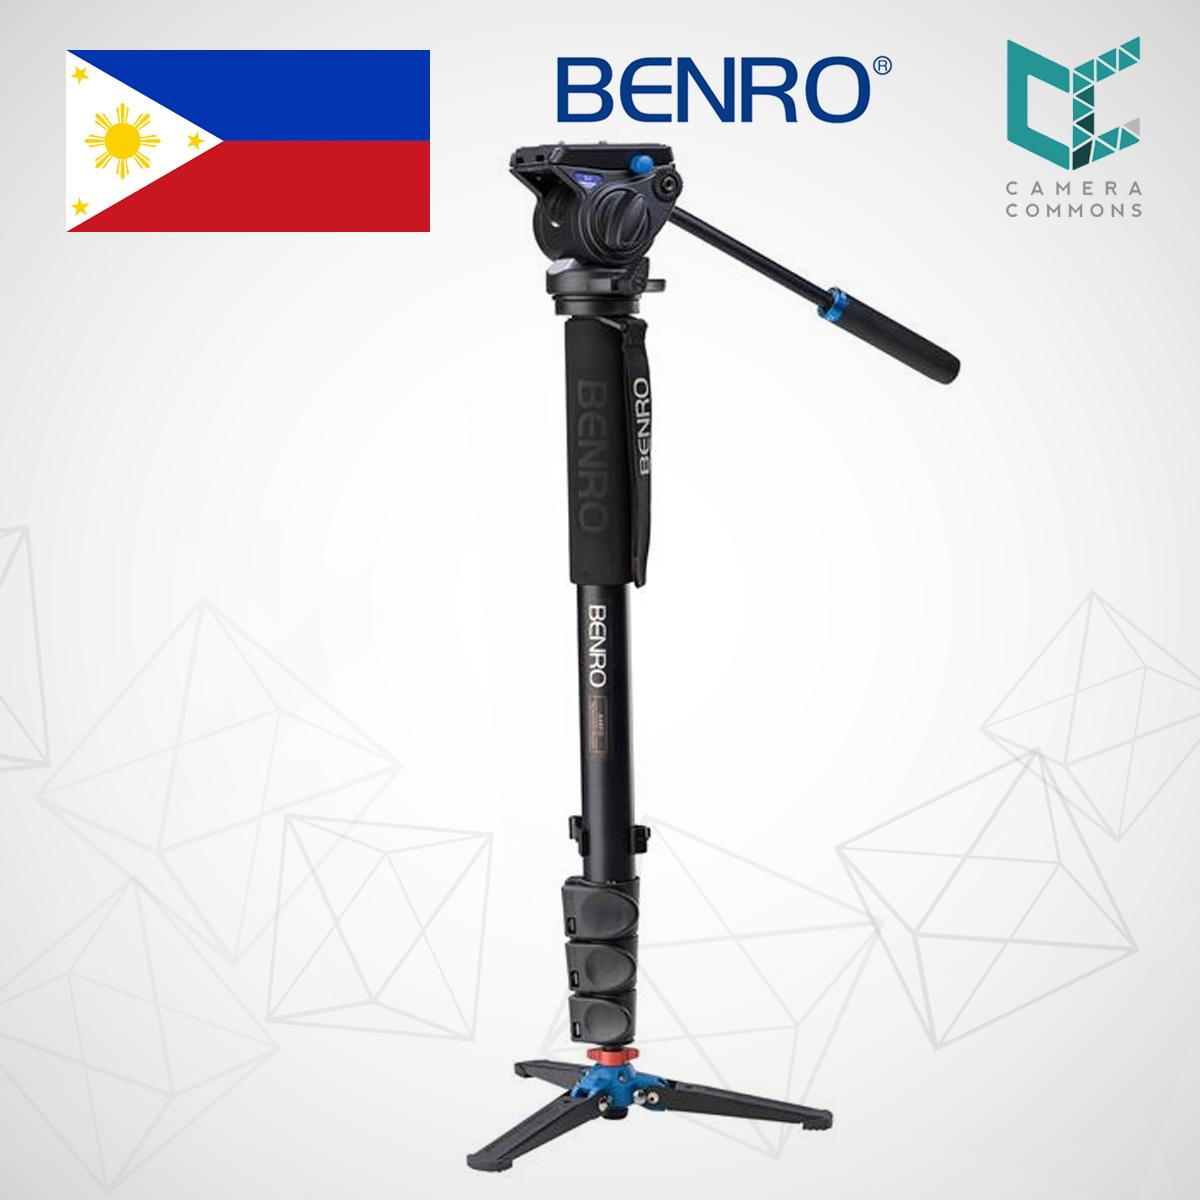 Benro Philippines Price List Camera Bag Tripod Mount A1883fs2c Aero 2 Video Travel Angel A48fds4 Series 4 Aluminum Monopod Flip Lock